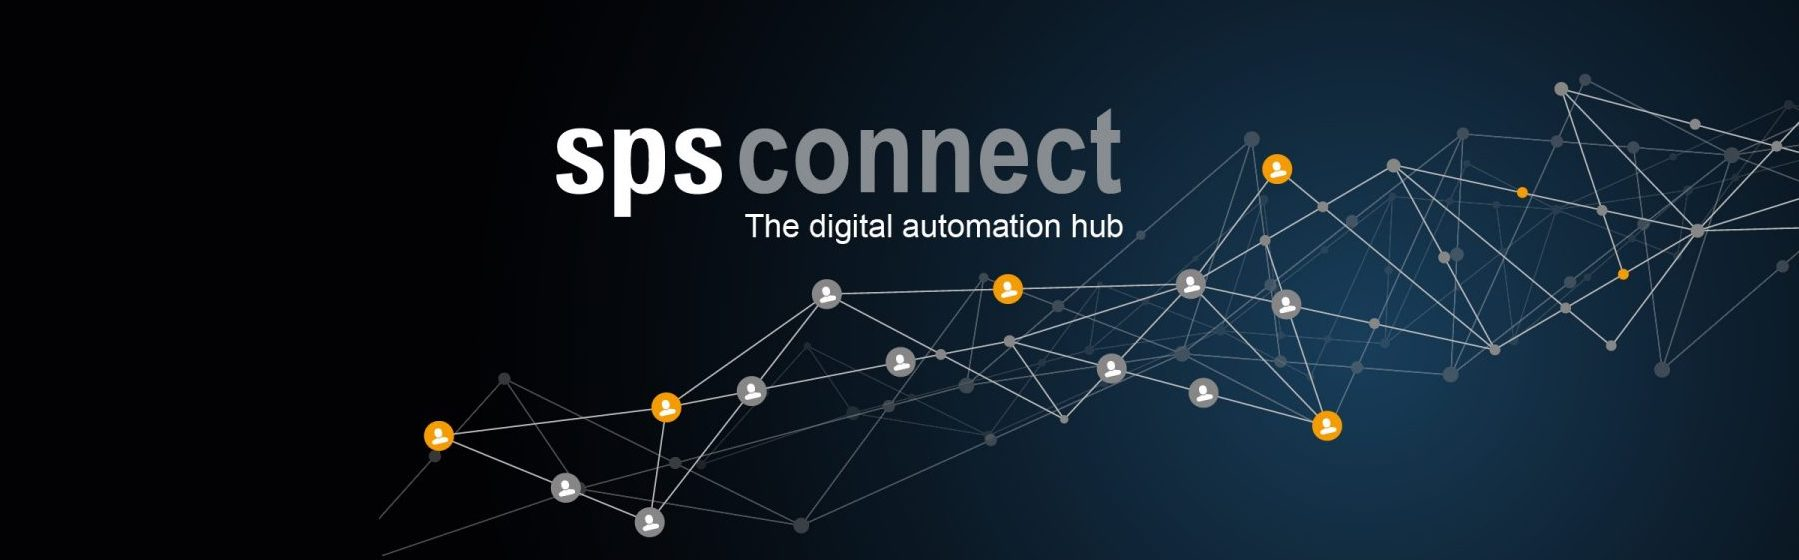 SPS Connect 2020